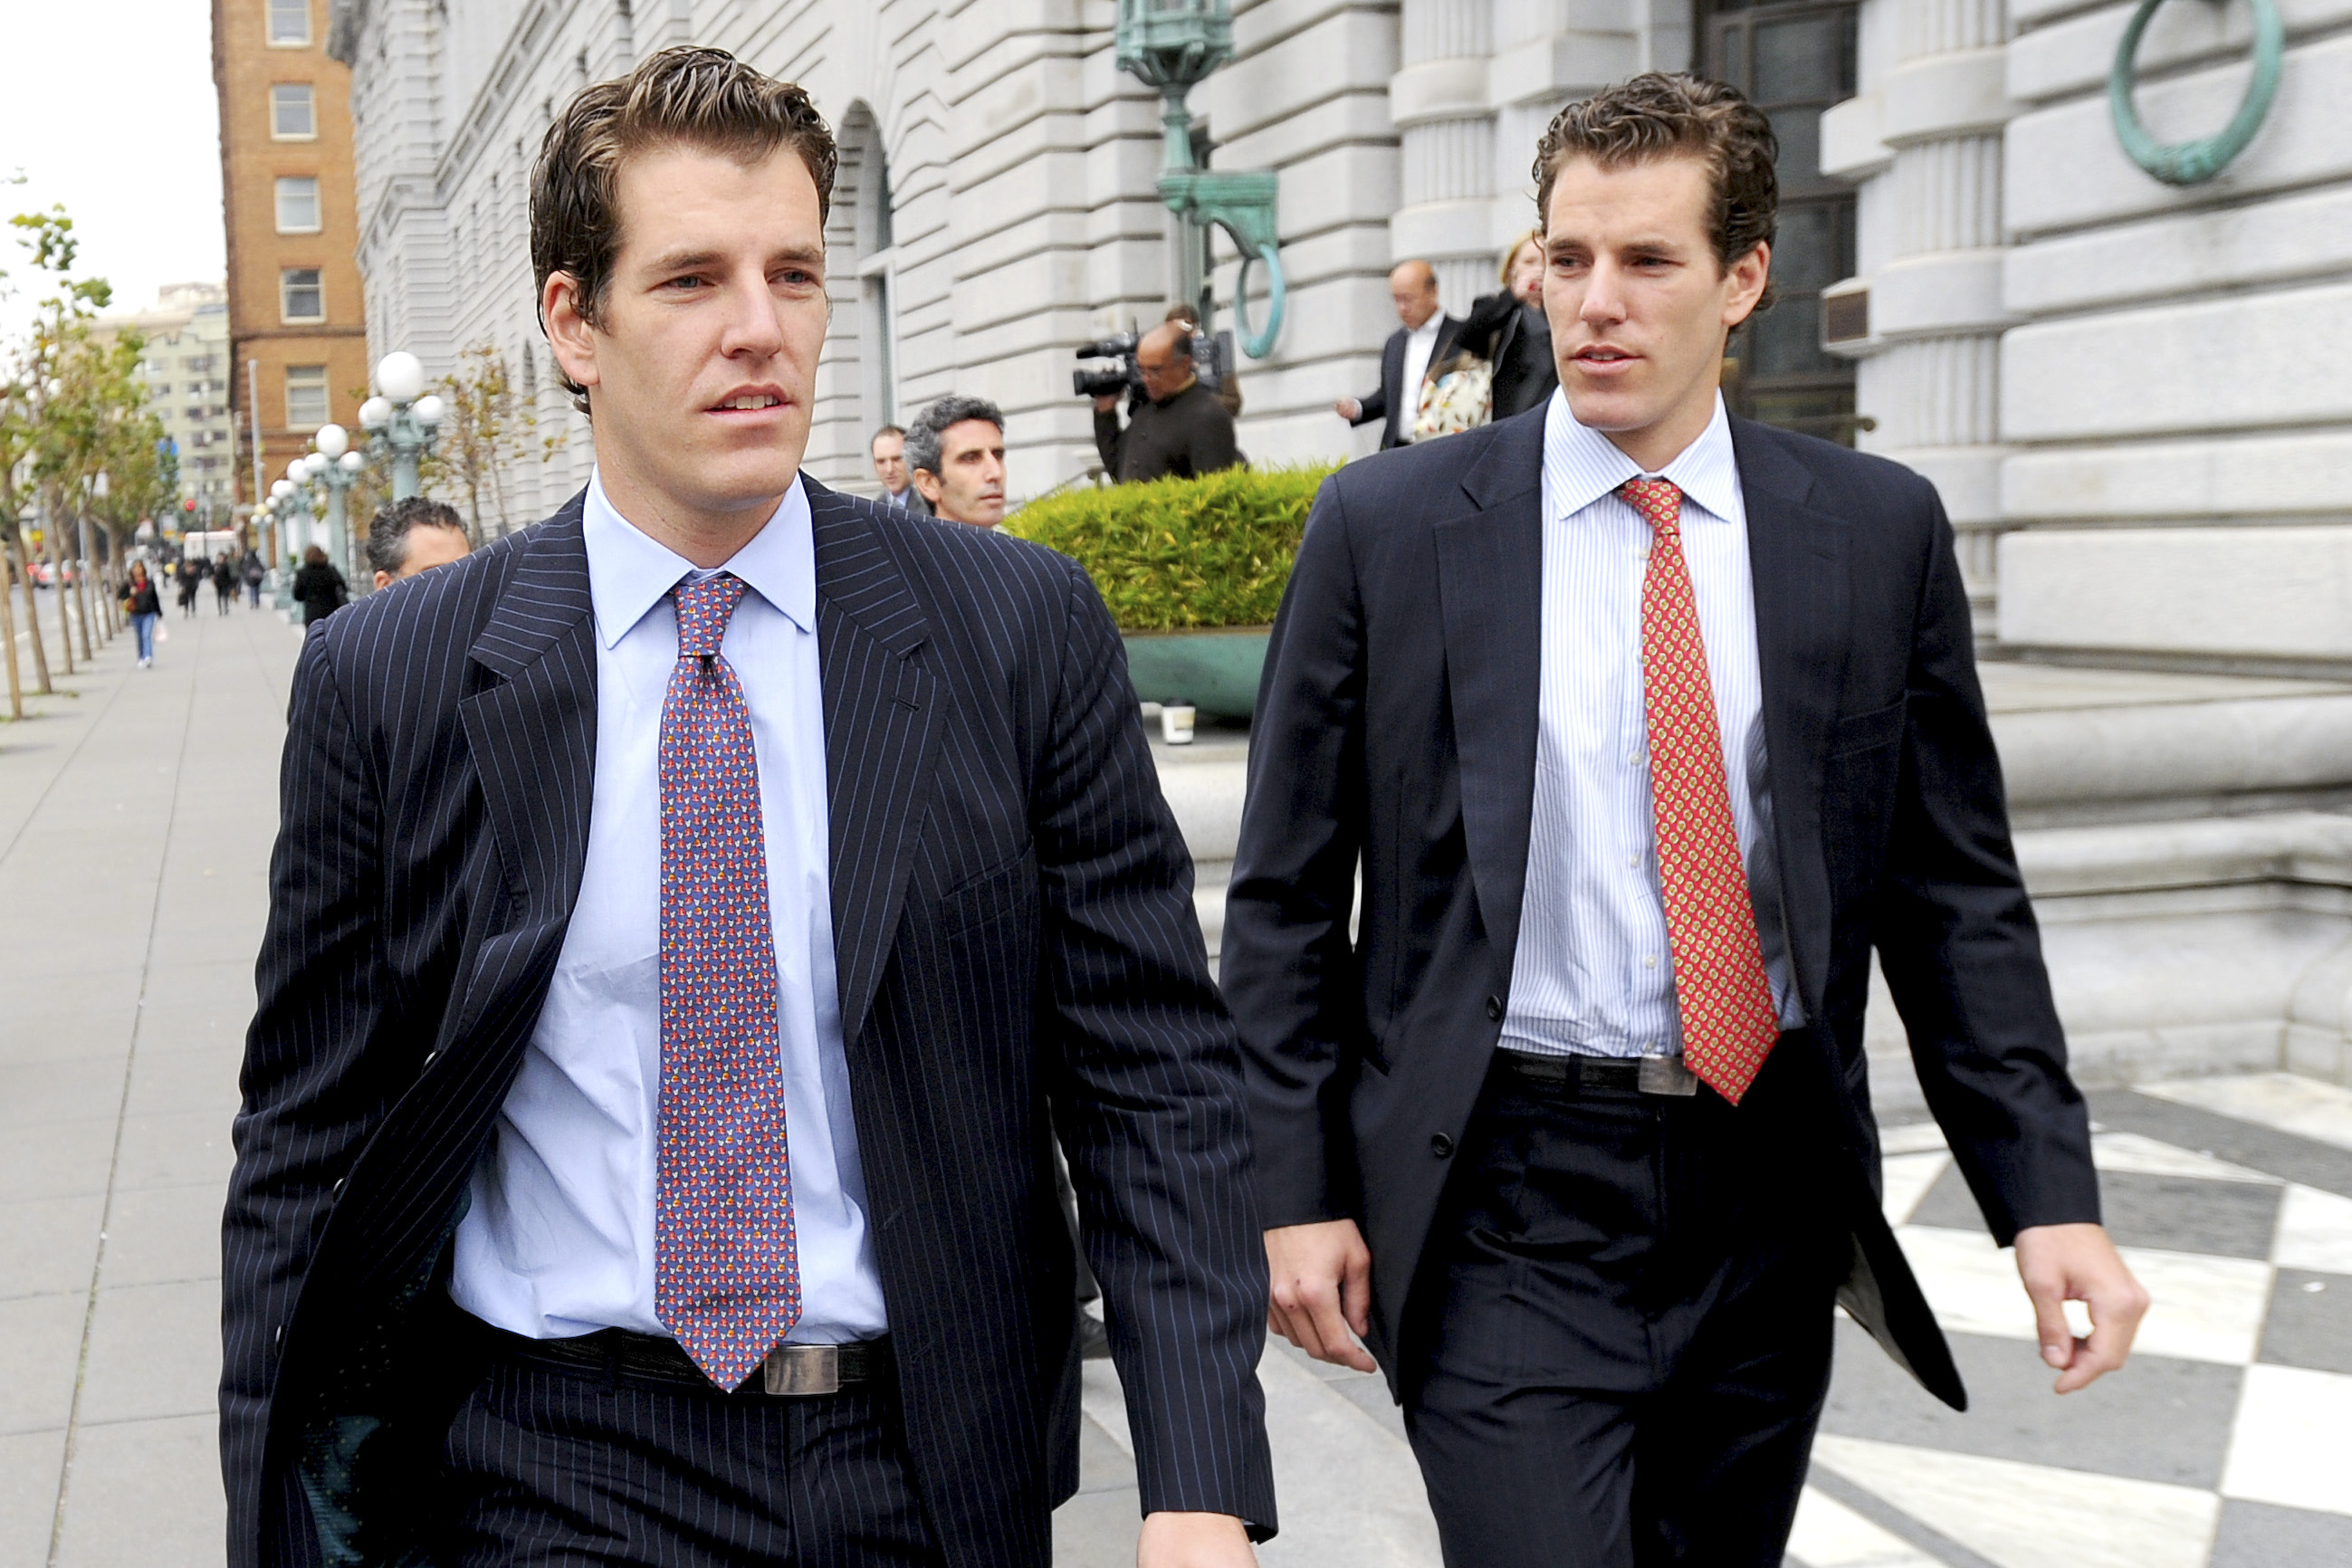 Tyler, left, and Cameron Winklevoss leave a courthouse in San Francisco on January 11, 2011.